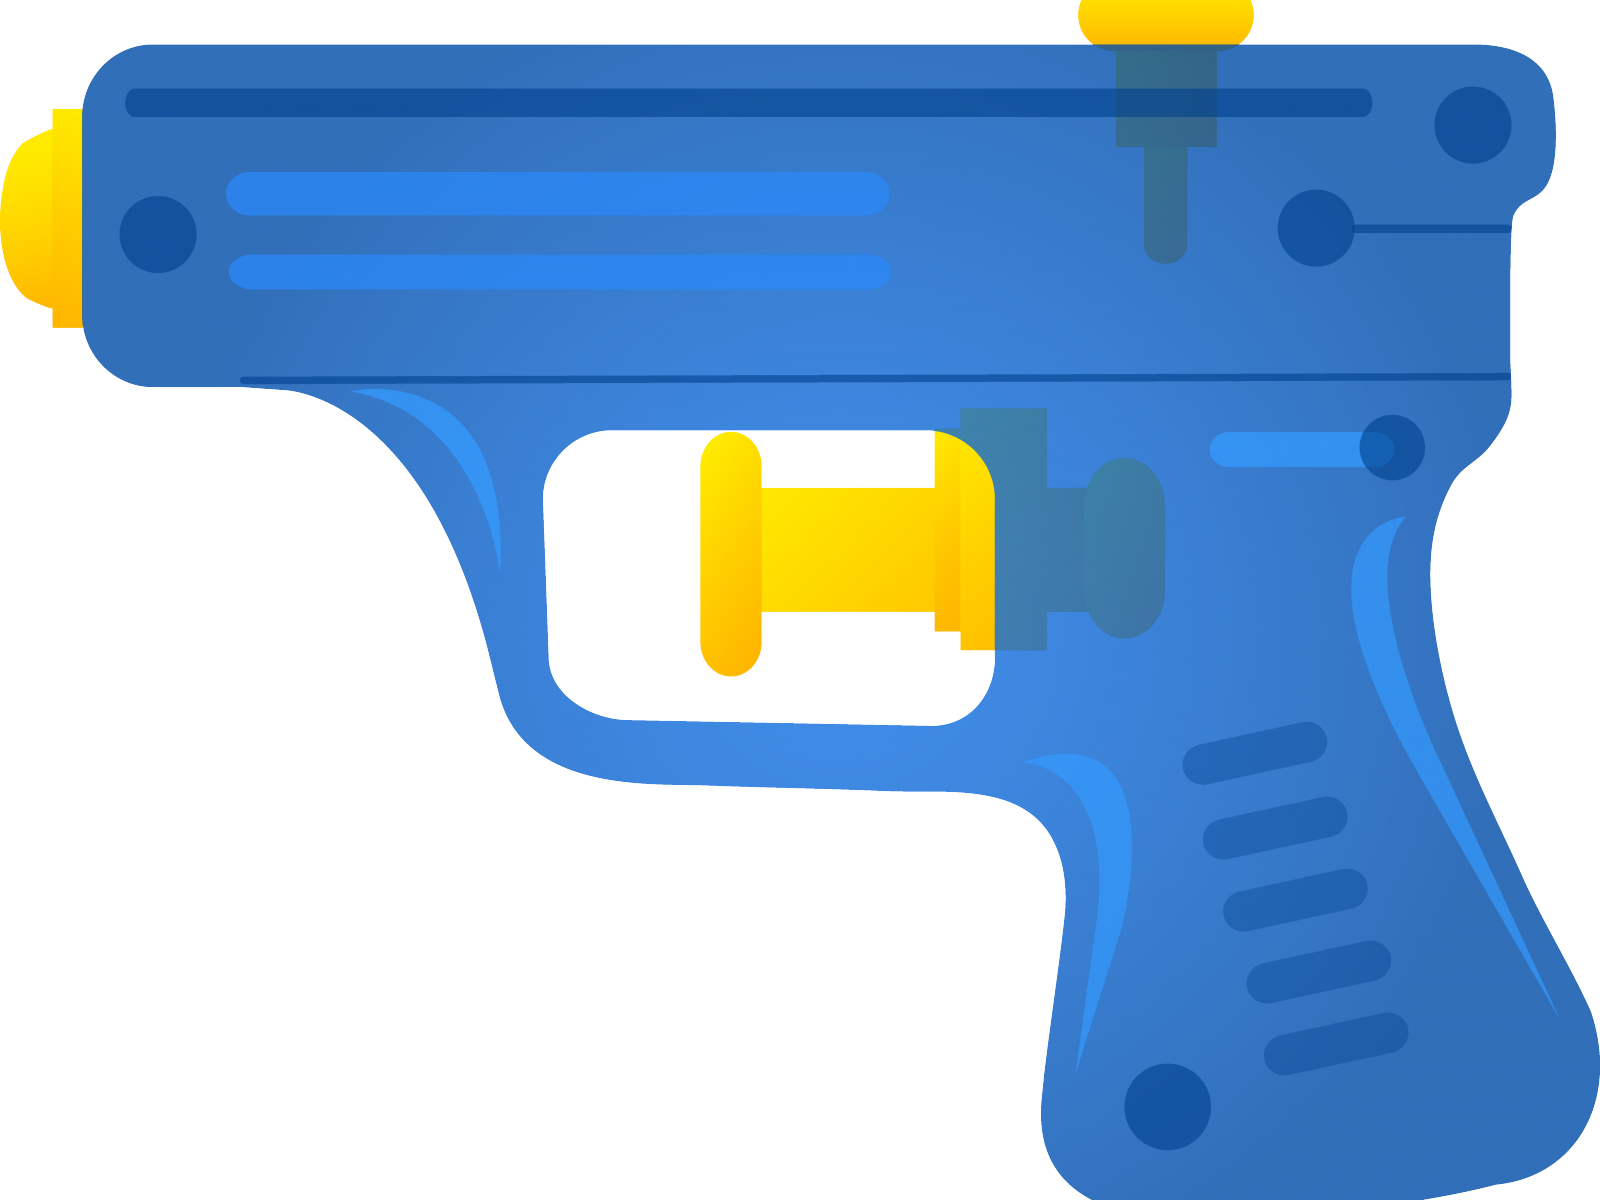 Guns clipart toy, Guns toy Transparent FREE for download on.